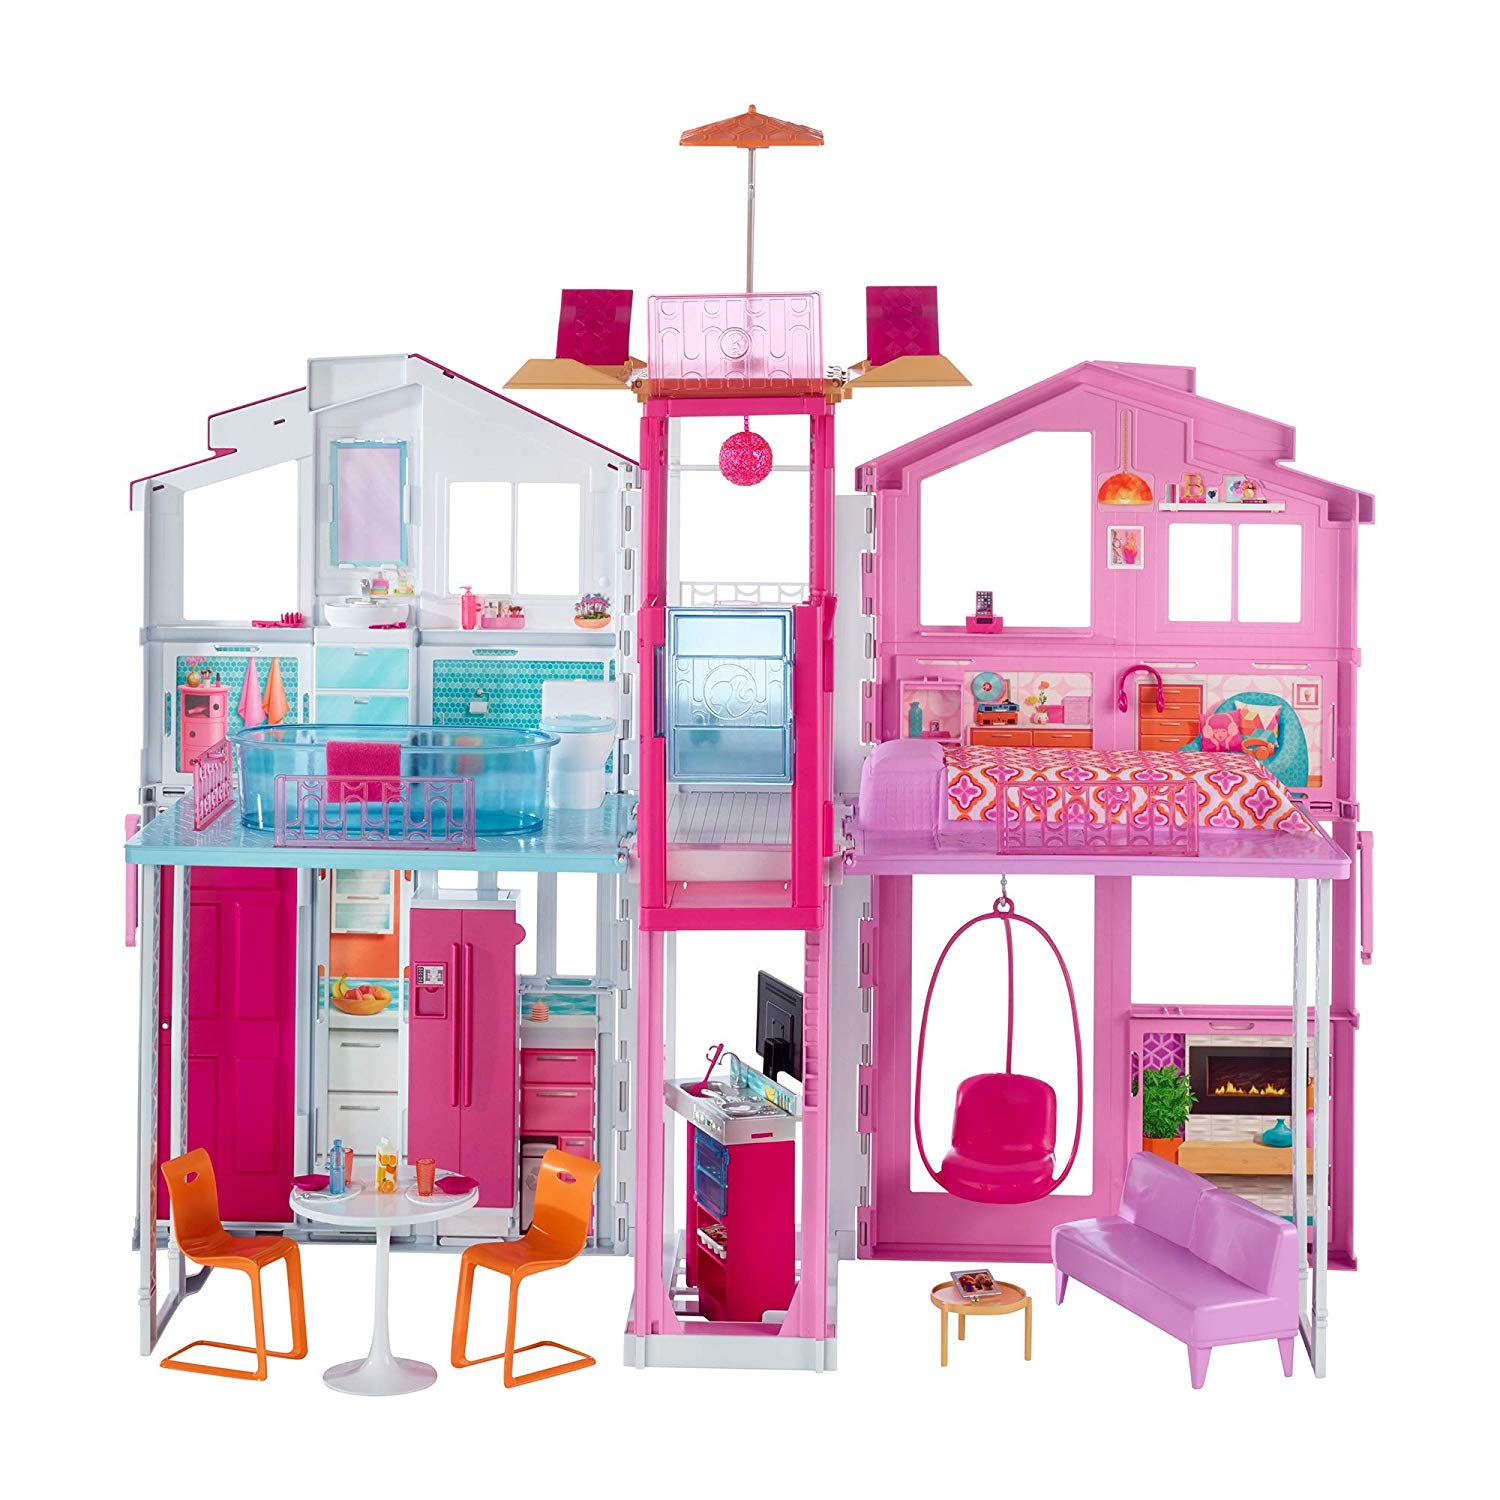 La Cucina Di Barbie | Accessori Cucina Di Barbie